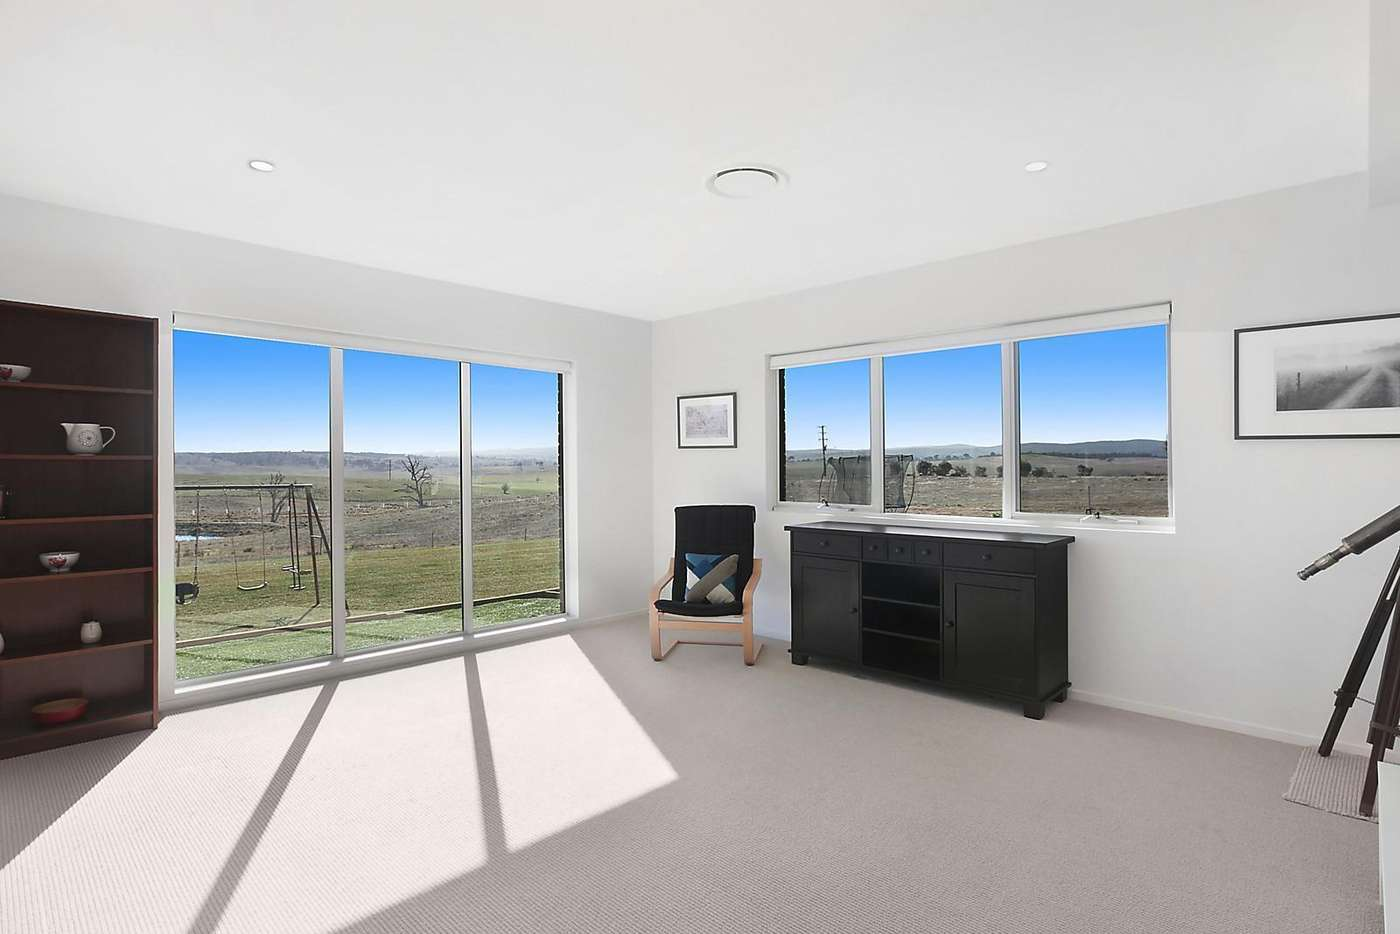 Fifth view of Homely house listing, 880 Back Creek Road, Gundaroo NSW 2620